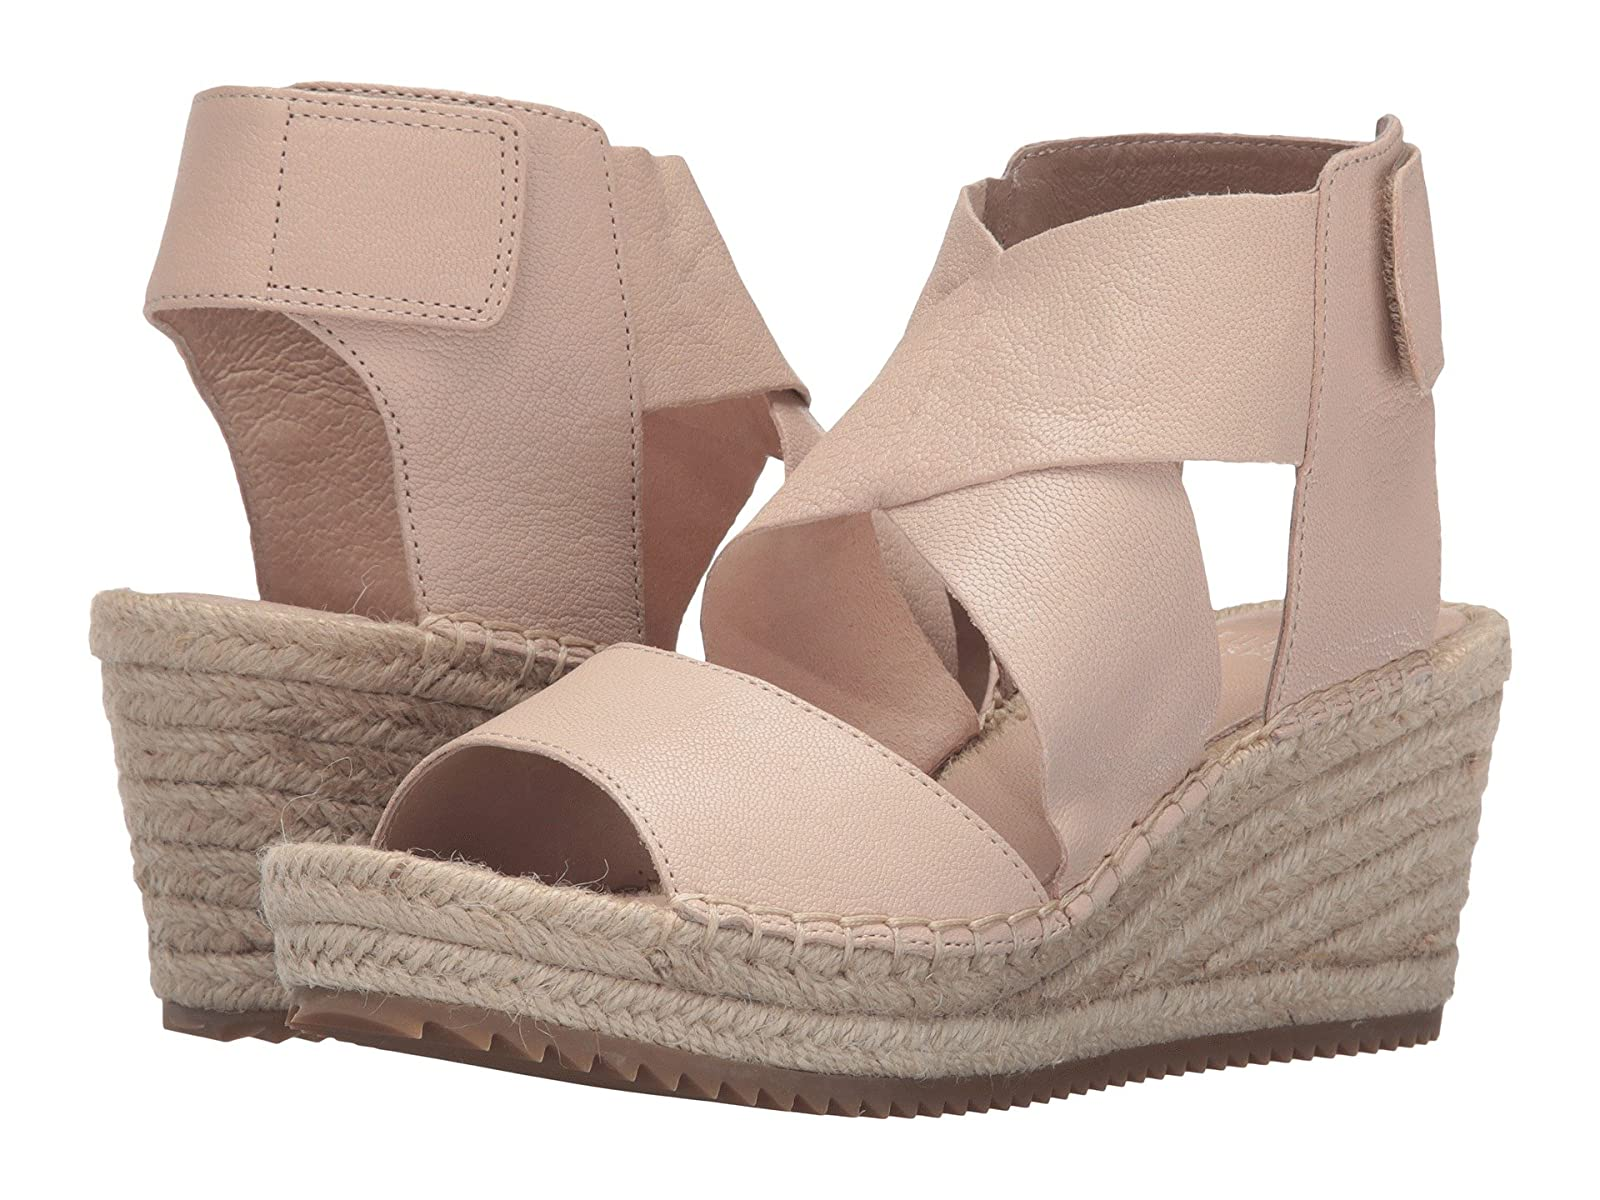 Eileen Fisher WillowCheap and distinctive eye-catching shoes